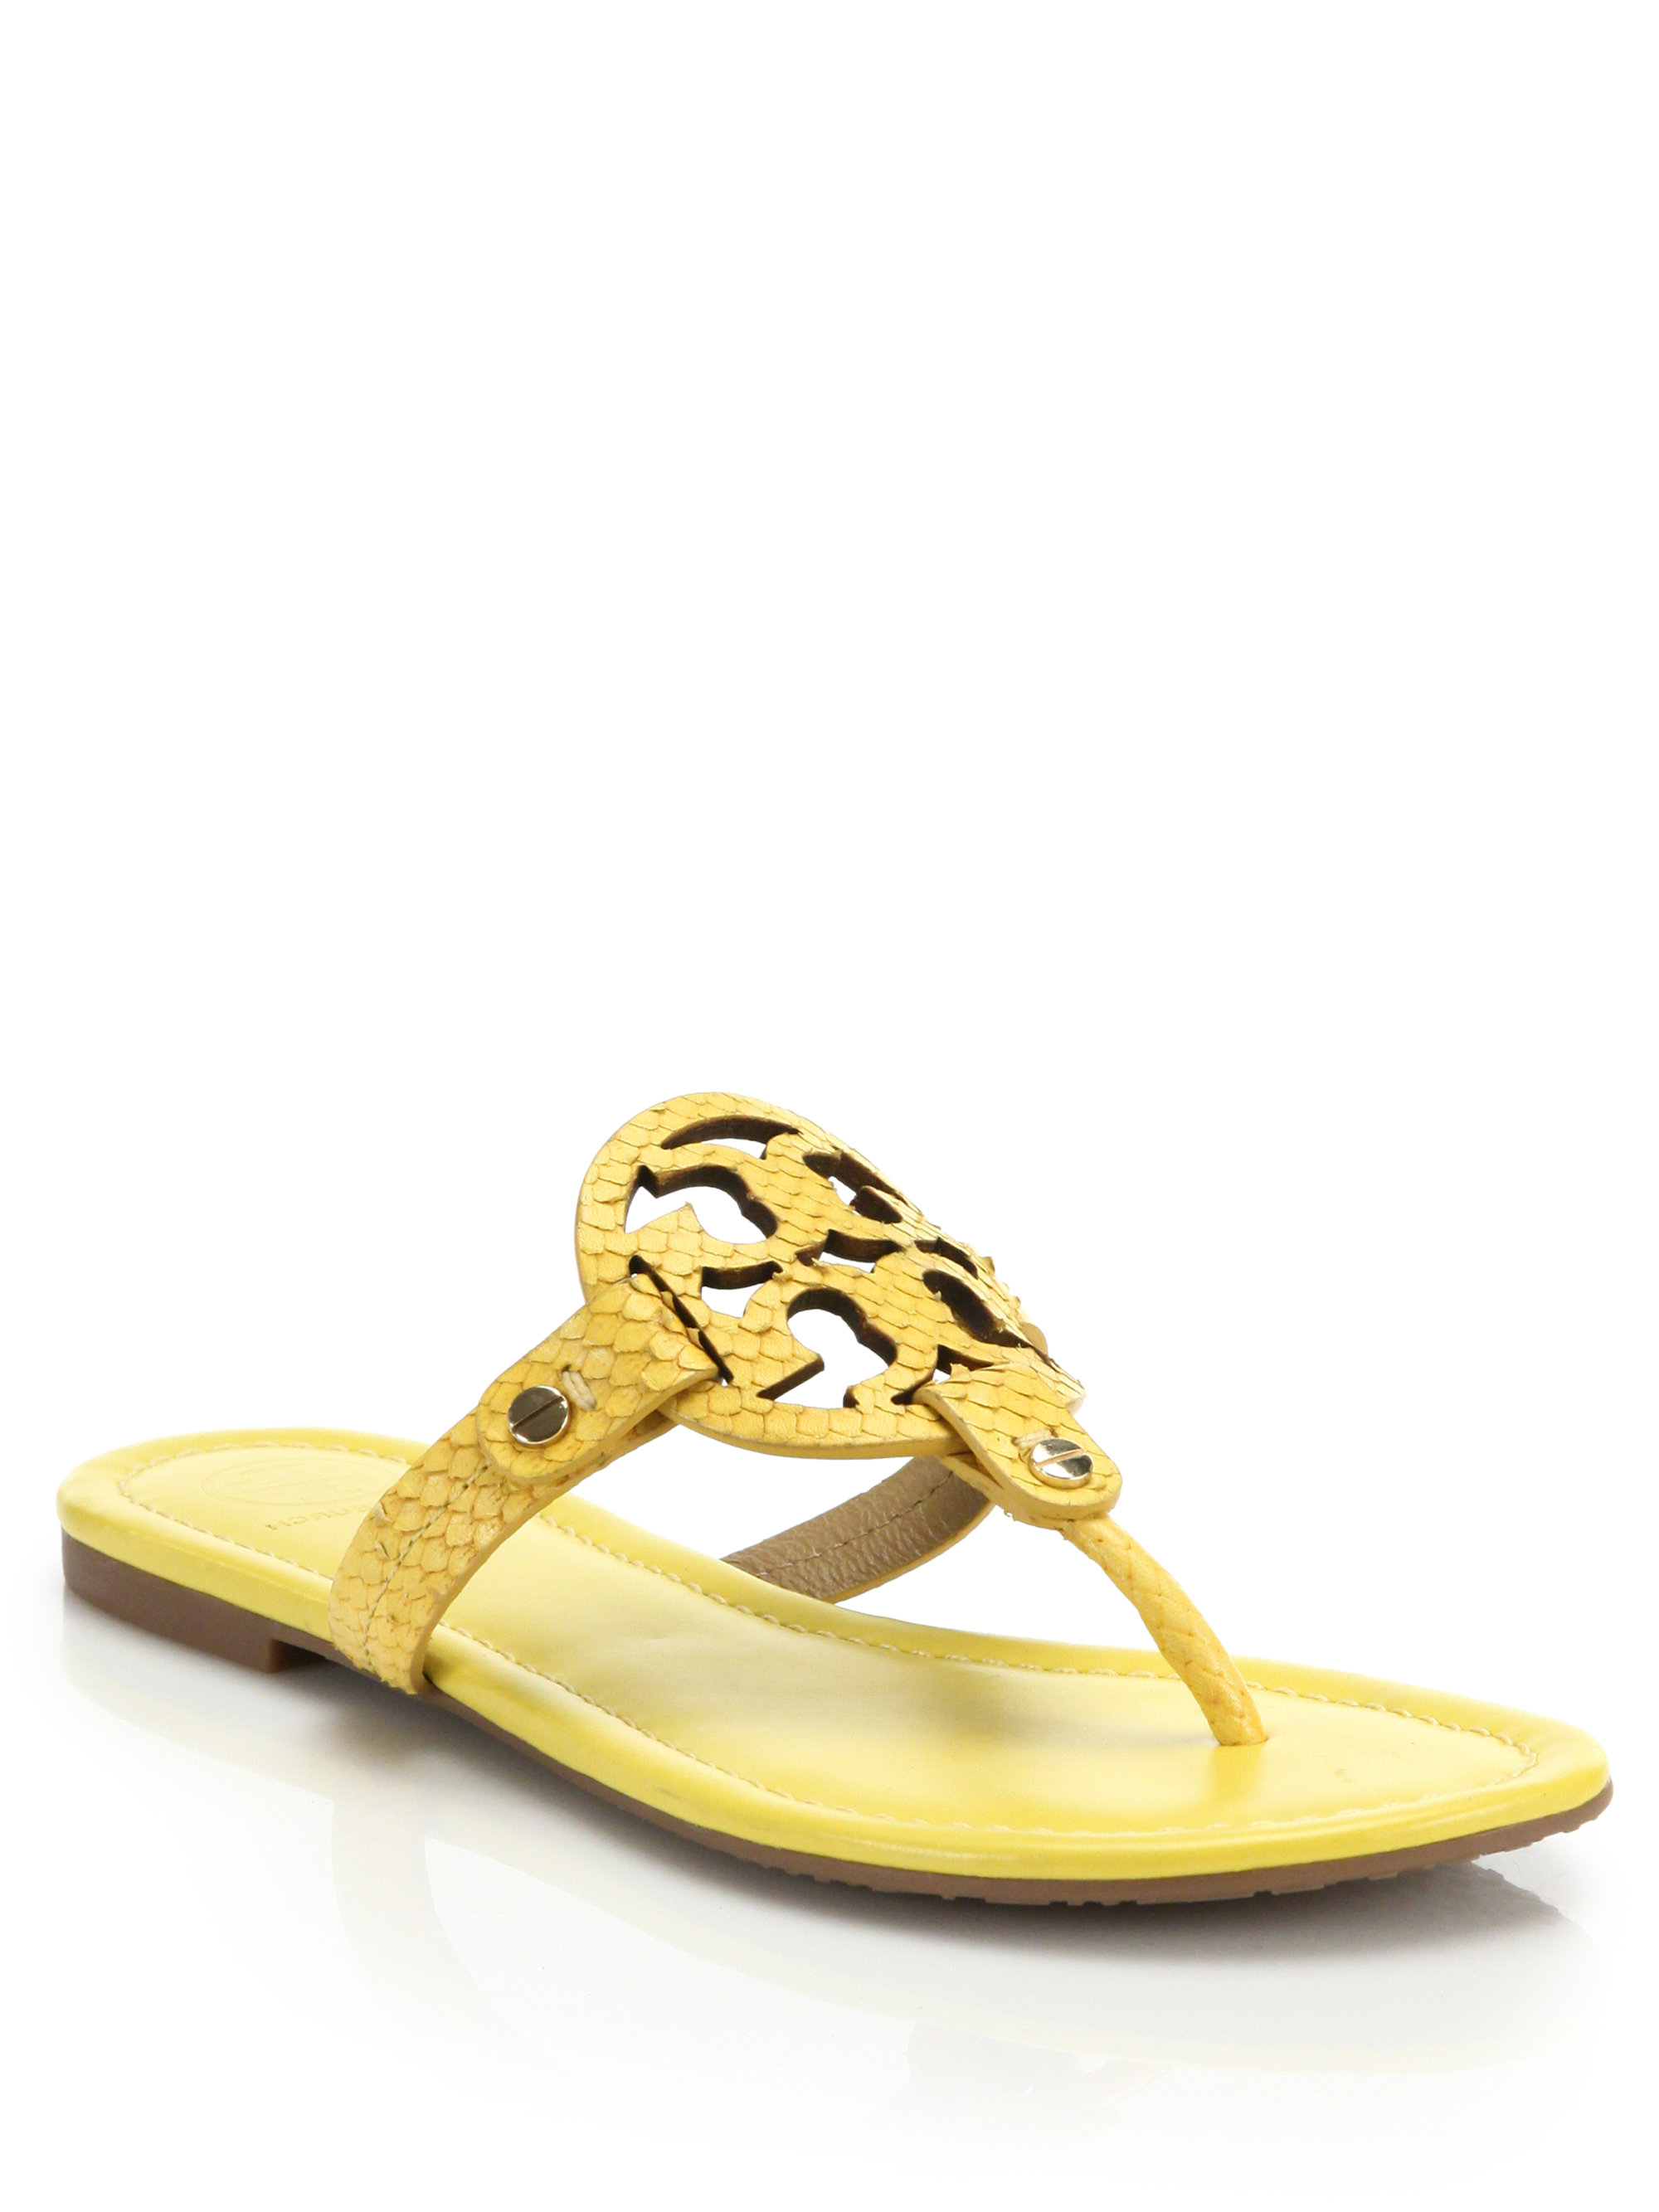 ca2635893 Lyst - Tory Burch Miller Snake-embossed Leather Thong Sandals in Yellow